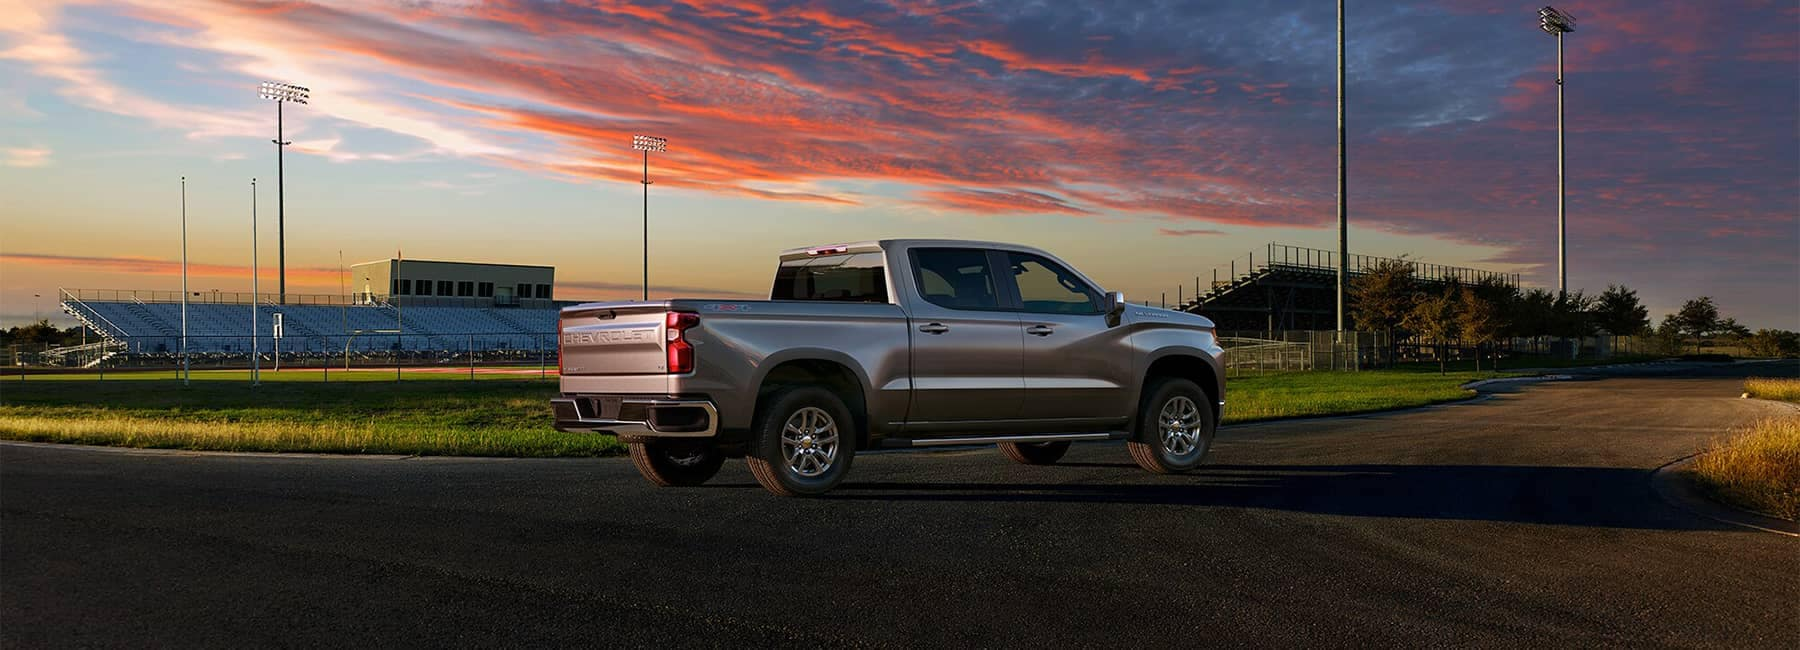 2020 Silverado 4x4 in Satin Steel Metallic at Football Stadium with Sunset